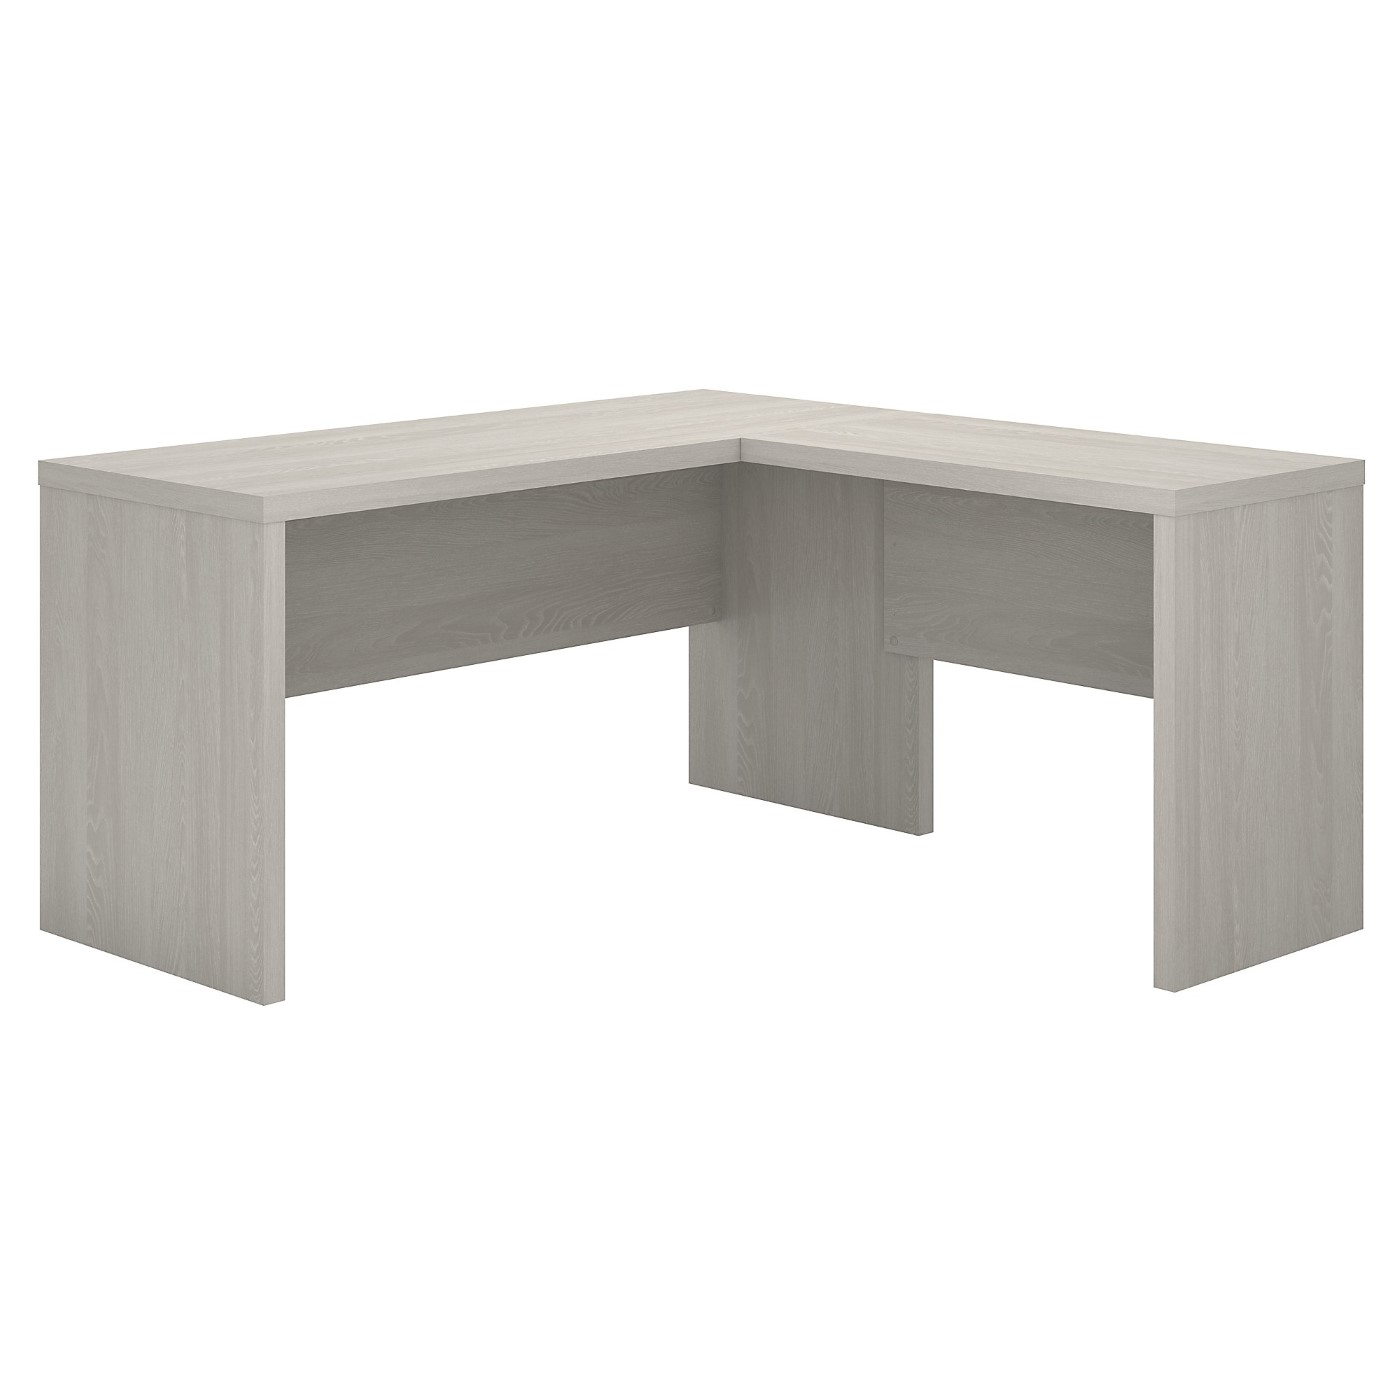 The kathy ireland� Echo L Shaped Desk is Sustainable Eco Friendly Furniture. Includes Free Shipping! 30H x 72L x 72W  VIDEO BELOW.